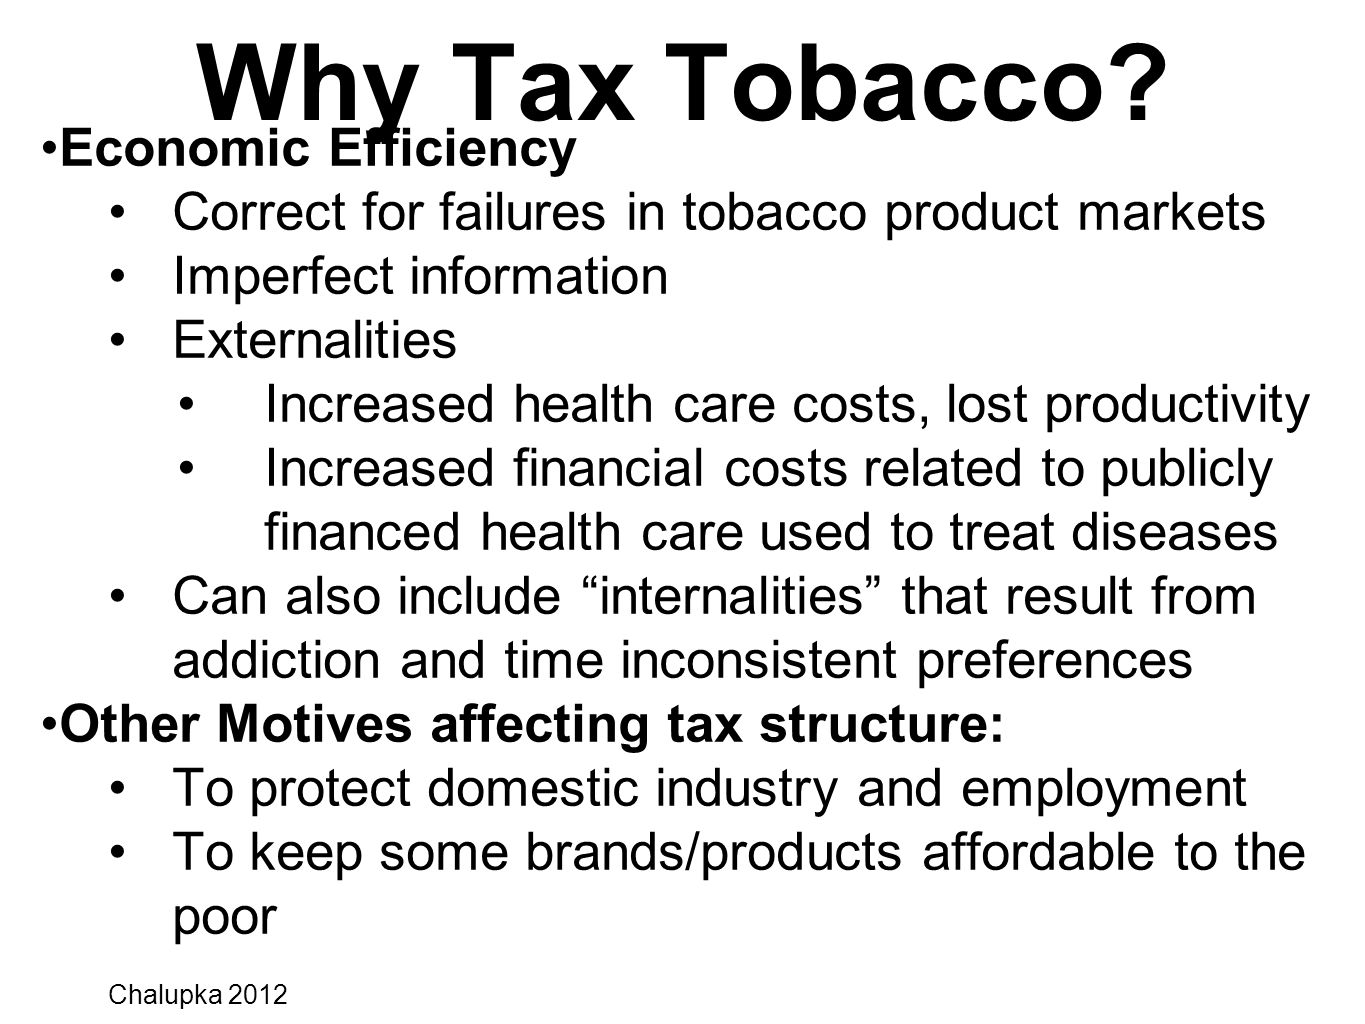 5 Why Tax Tobacco? Economic Efficiency Correct for failures in tobacco product markets Imperfect information Externalities Increased health care costs